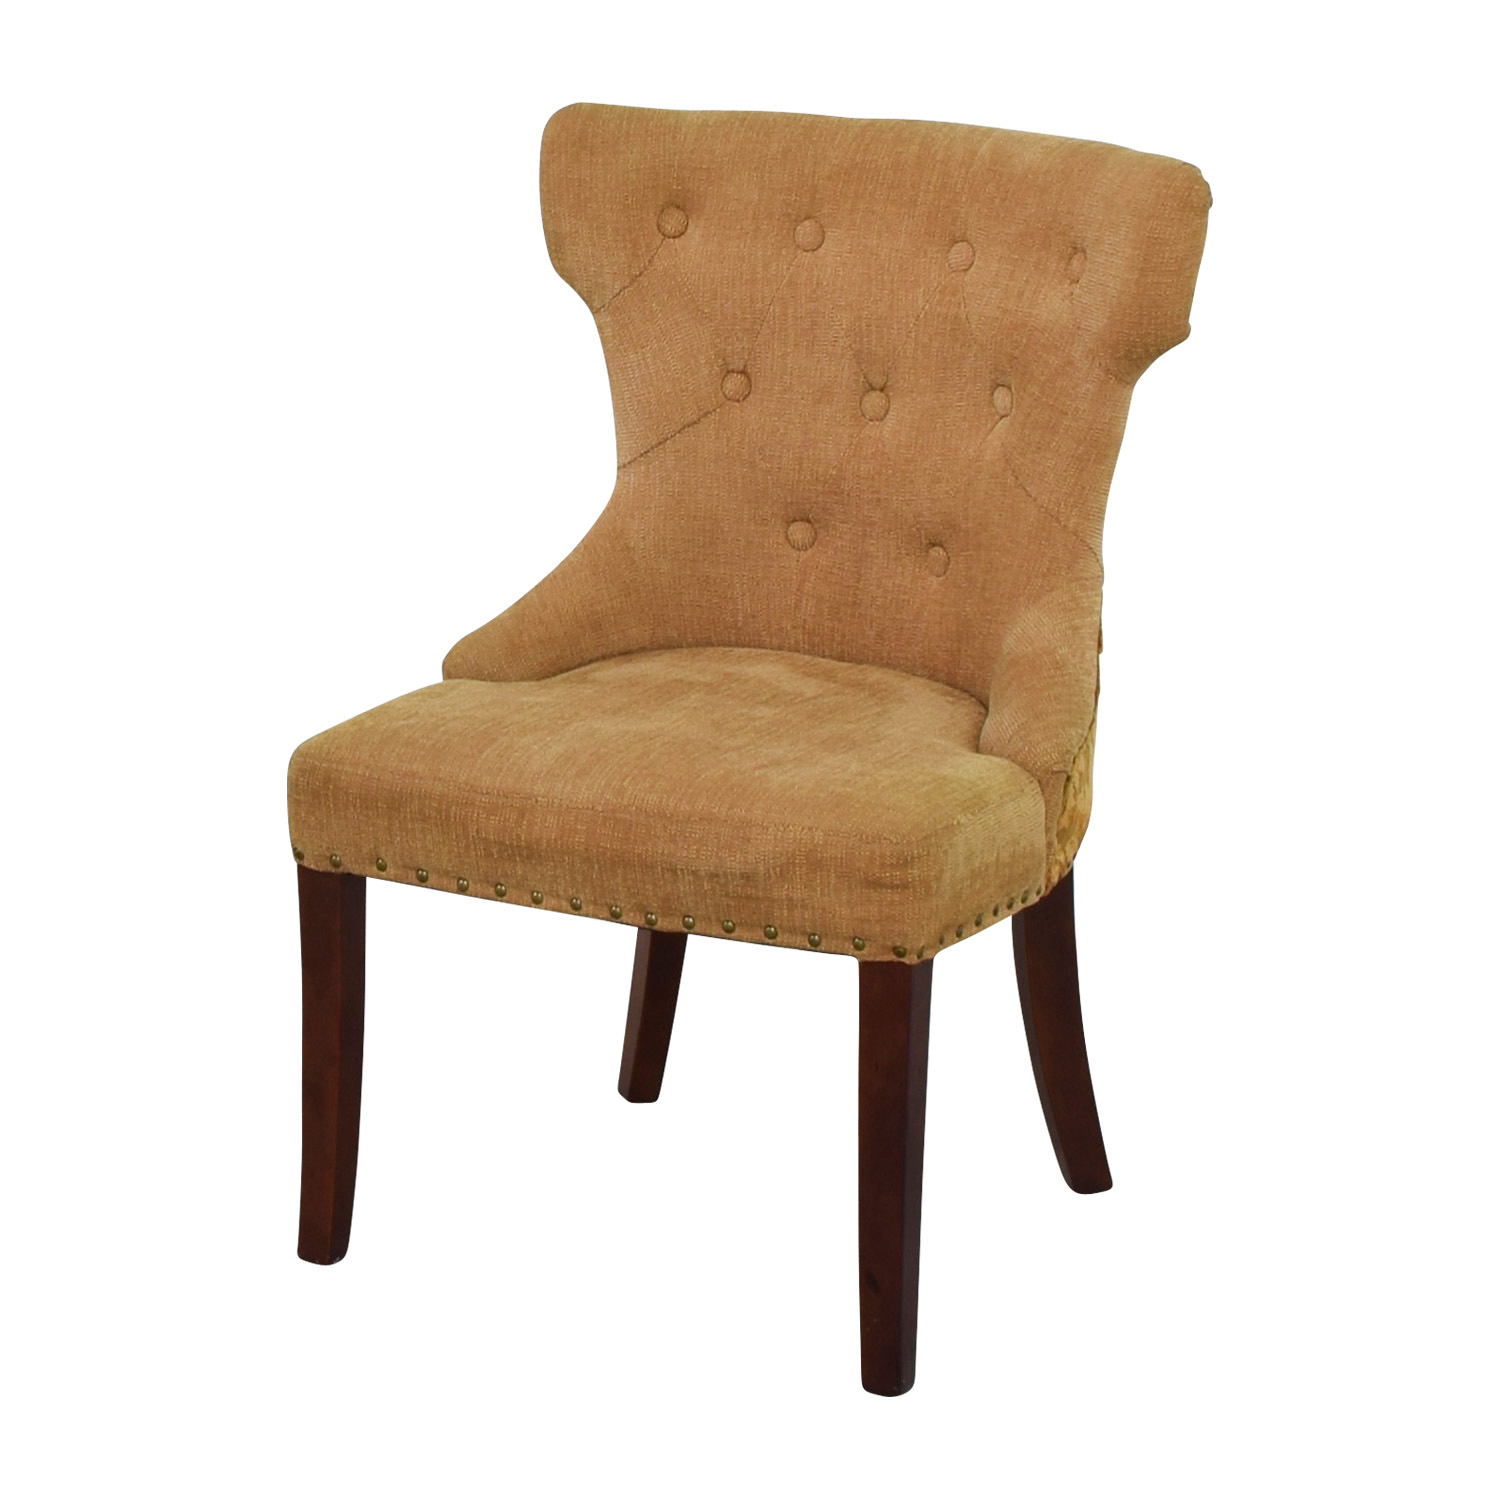 Chair Furniture 90 Off Pier 1 Pier 1 Beige Accent Chair Chairs